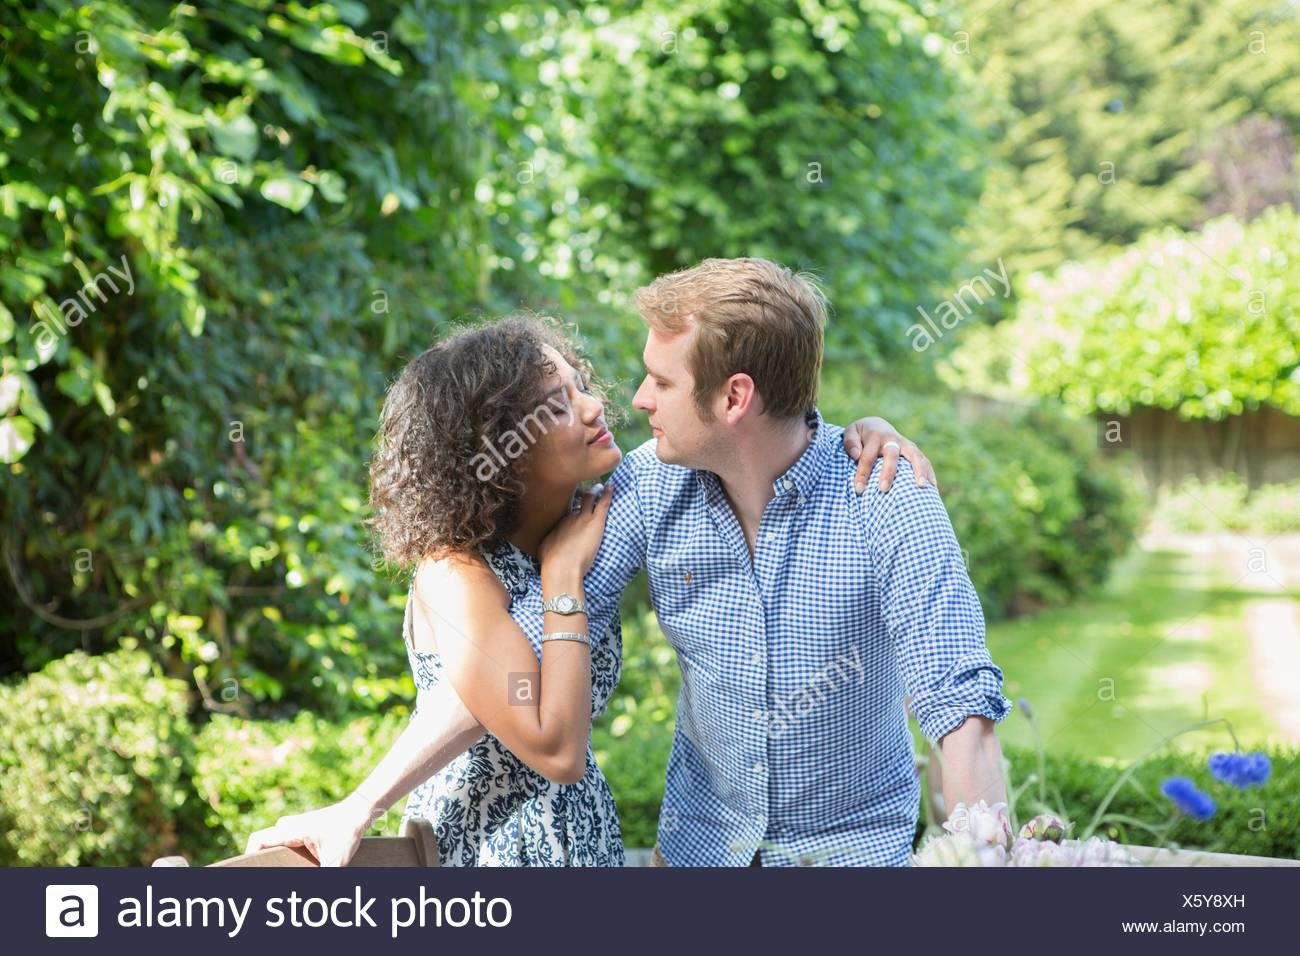 Mid adult couple, outdoors, embracing, face to face - Stock Image